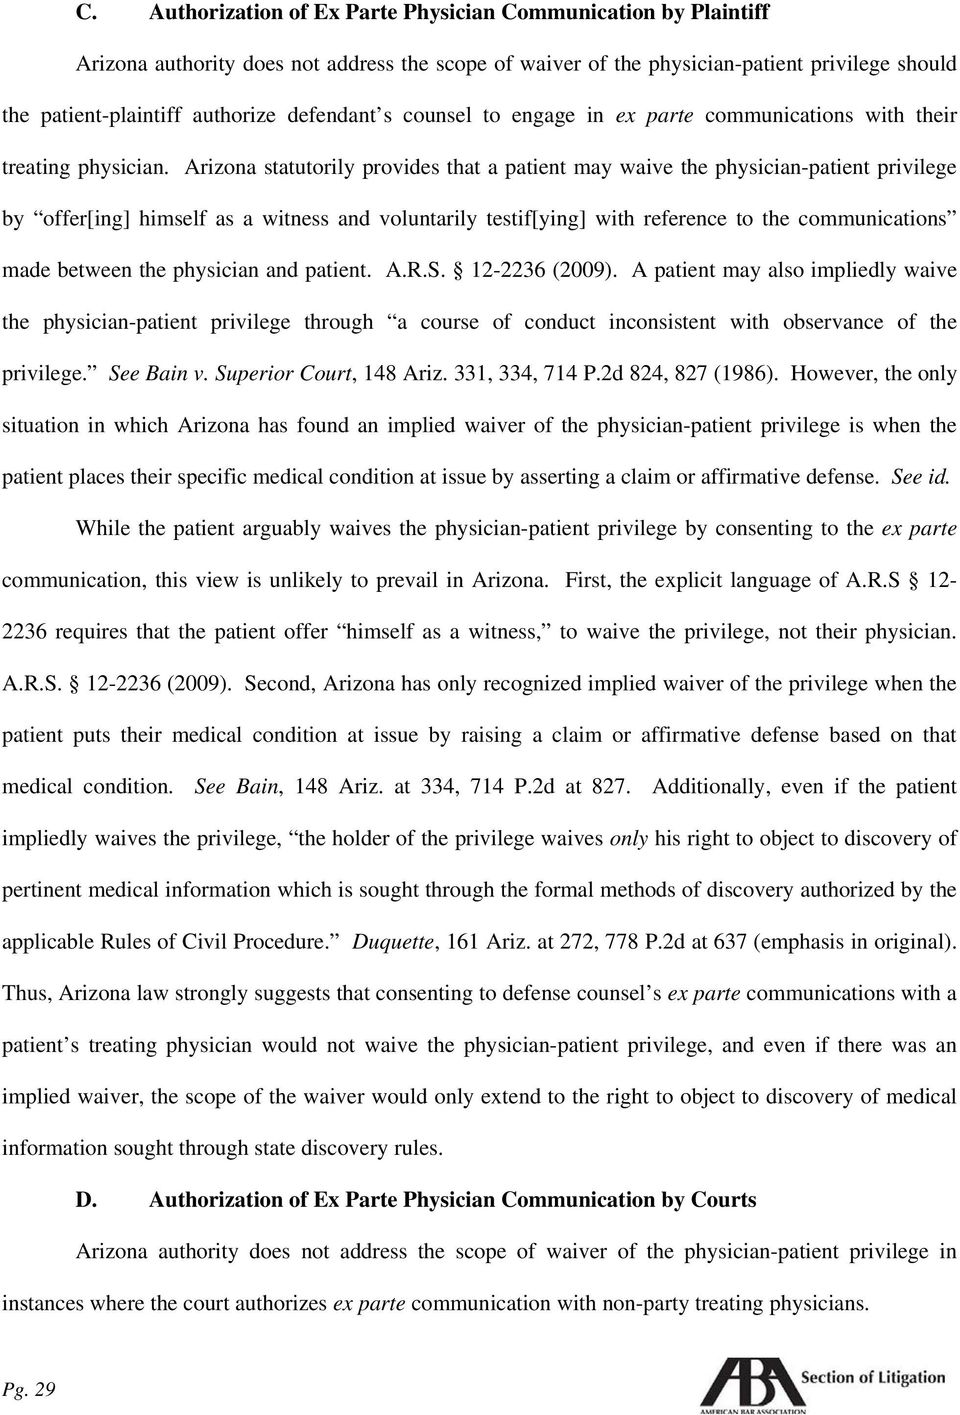 Arizona statutorily provides that a patient may waive the physician-patient privilege by offer[ing] himself as a witness and voluntarily testif[ying] with reference to the communications made between